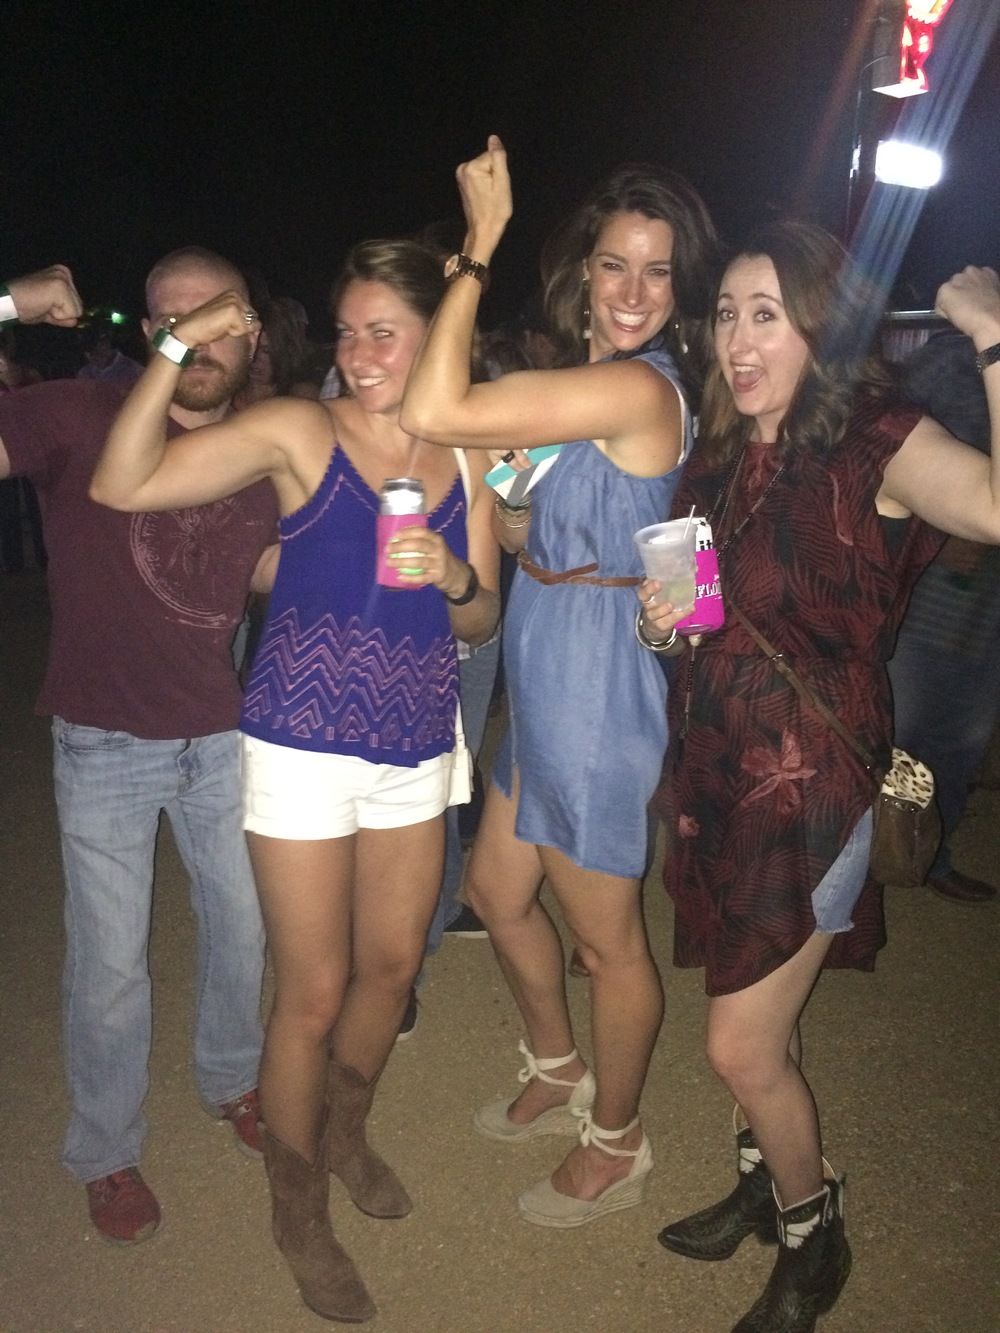 Randy Rogers Band concert, obviously.